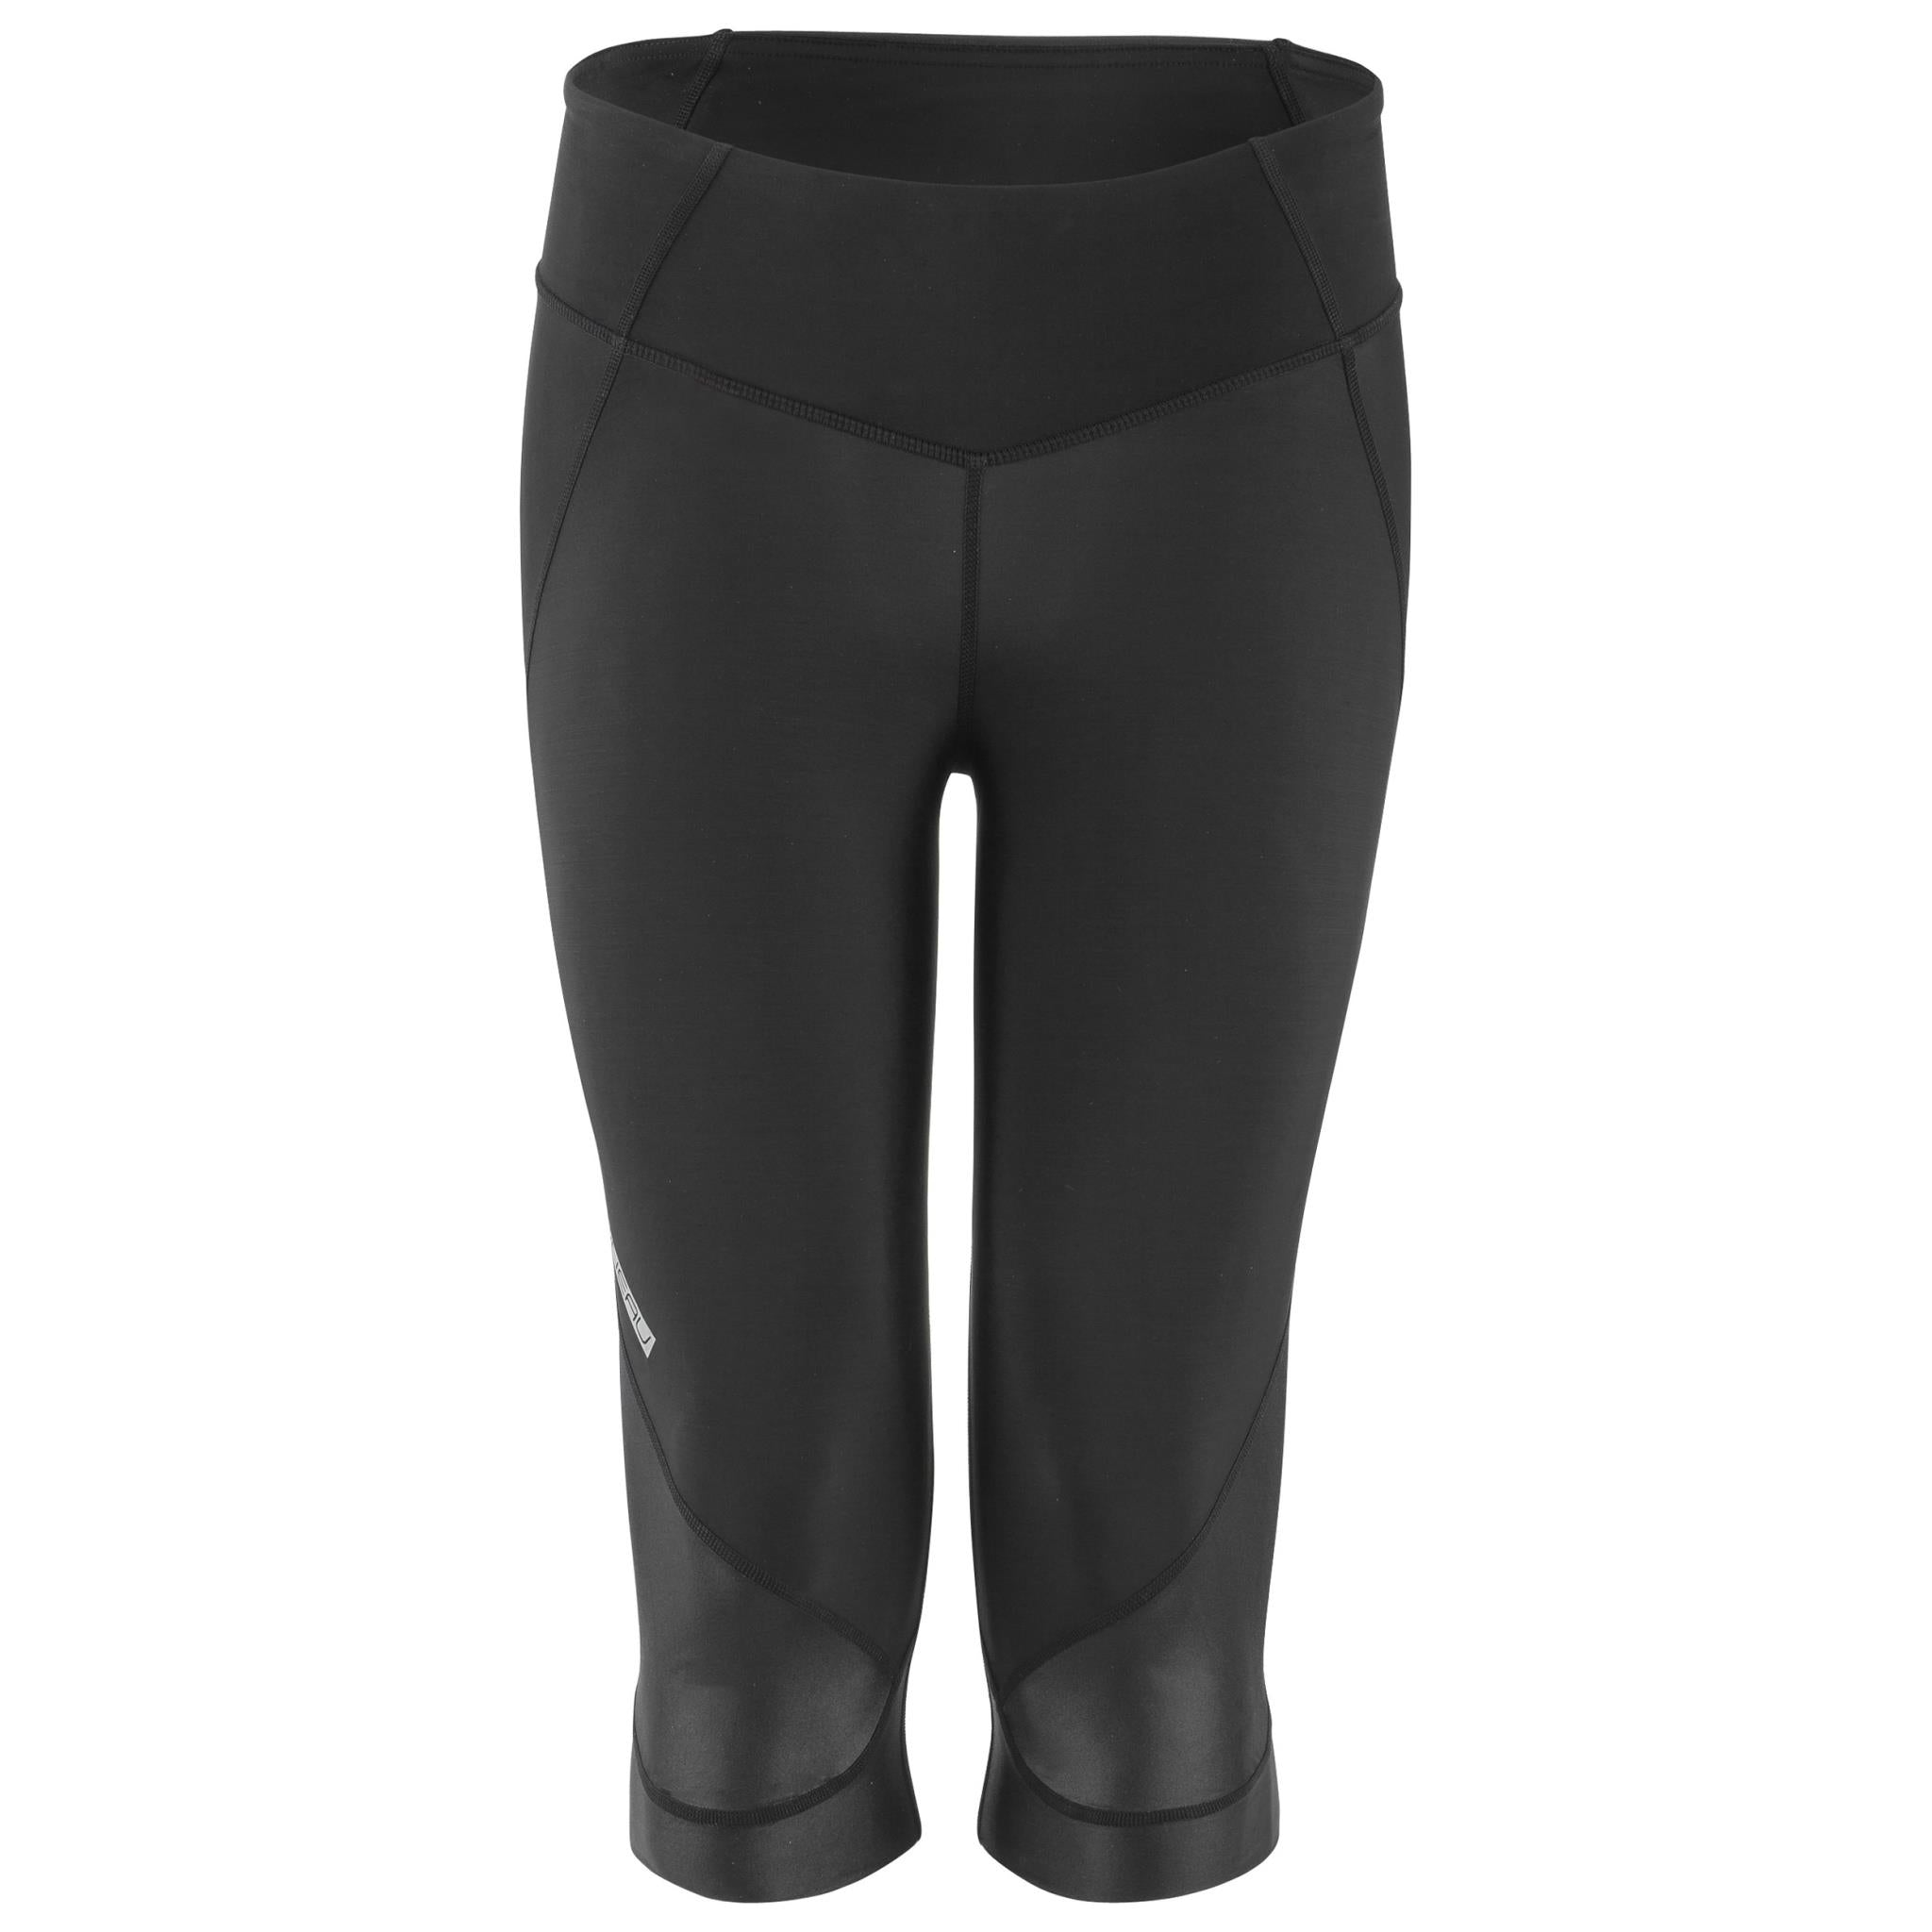 Louis Garneau Legging